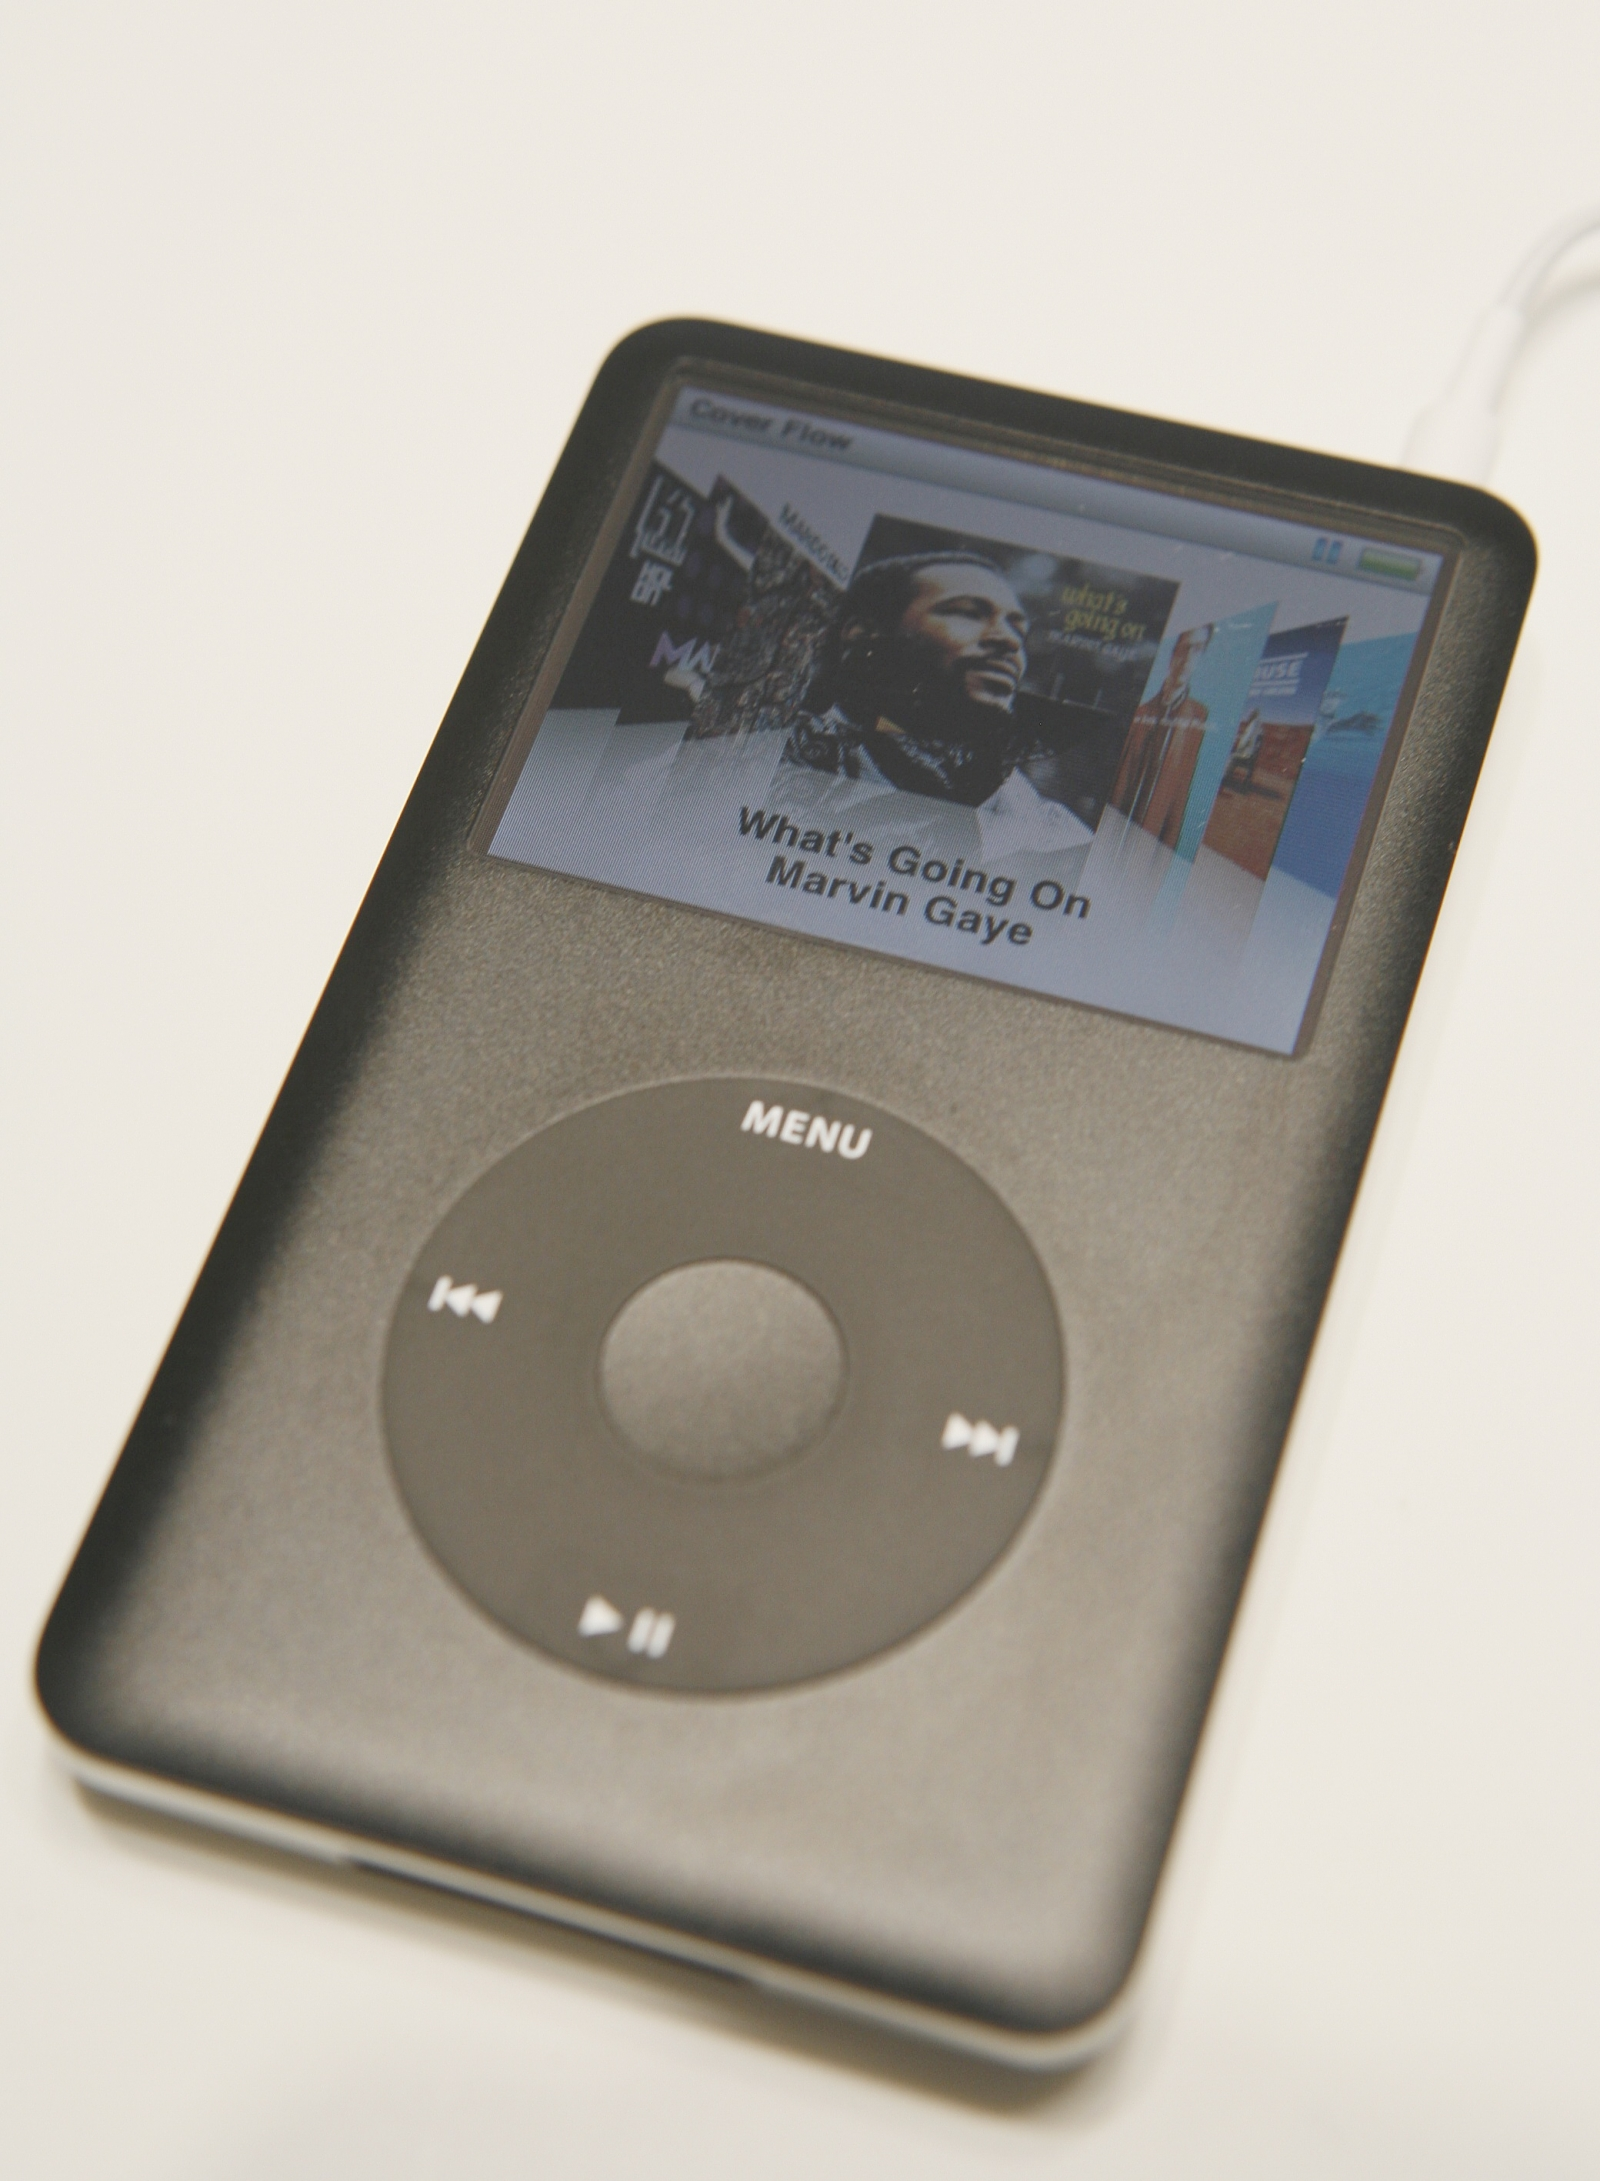 Apple iPod Classic Phased Out: A Look Back at the Popular ...